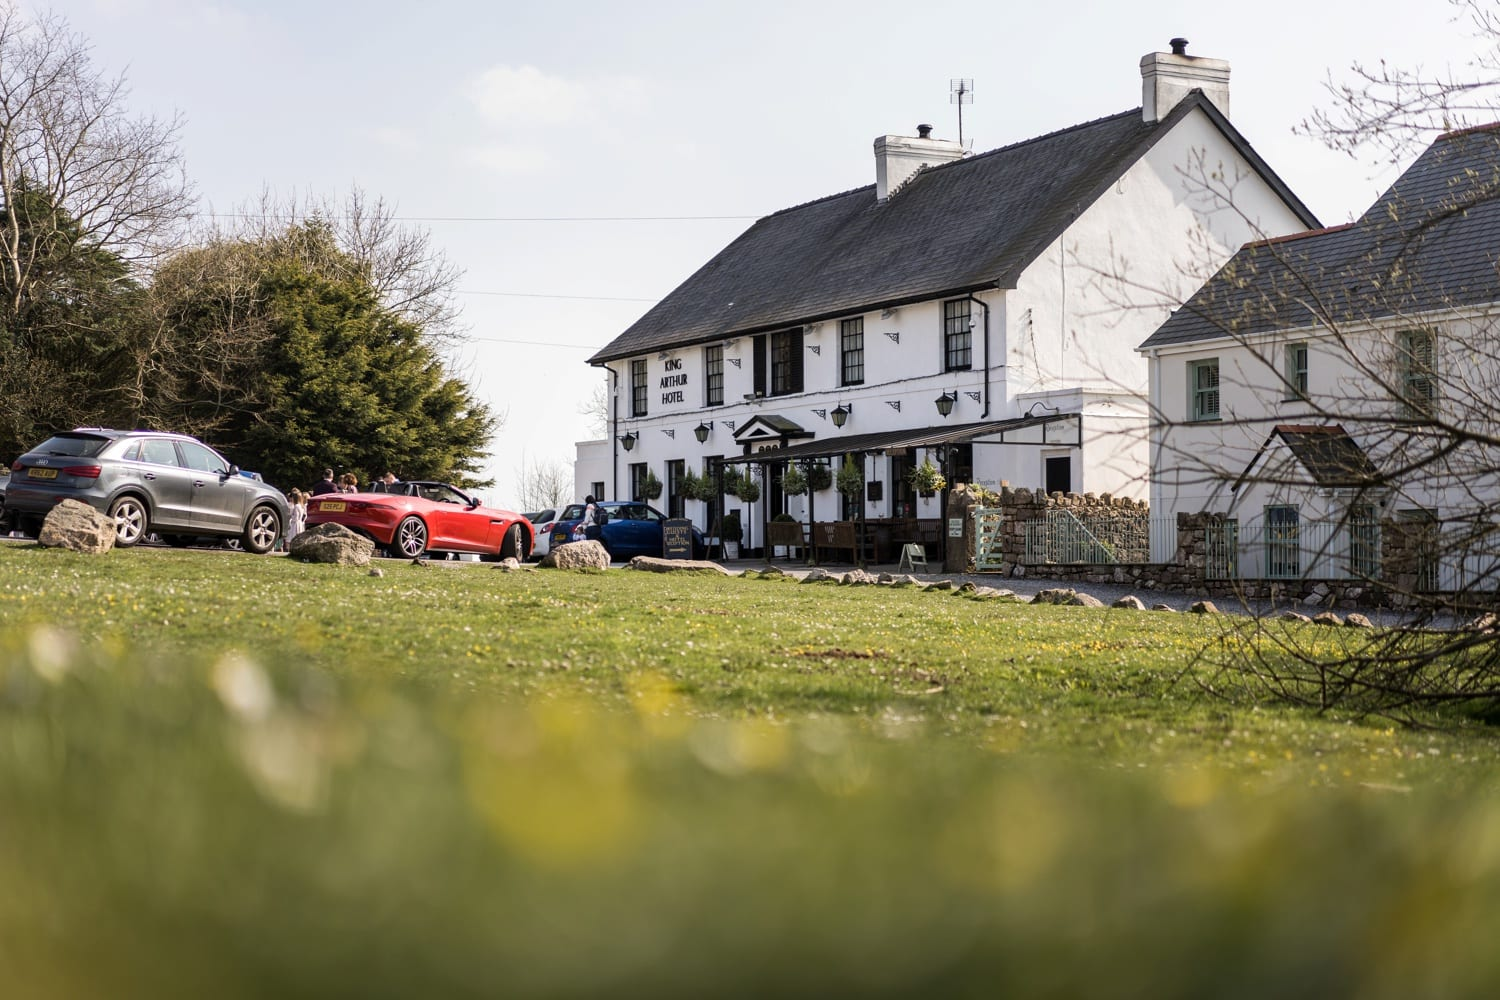 King Arthur Hotel in Gower, South Wales